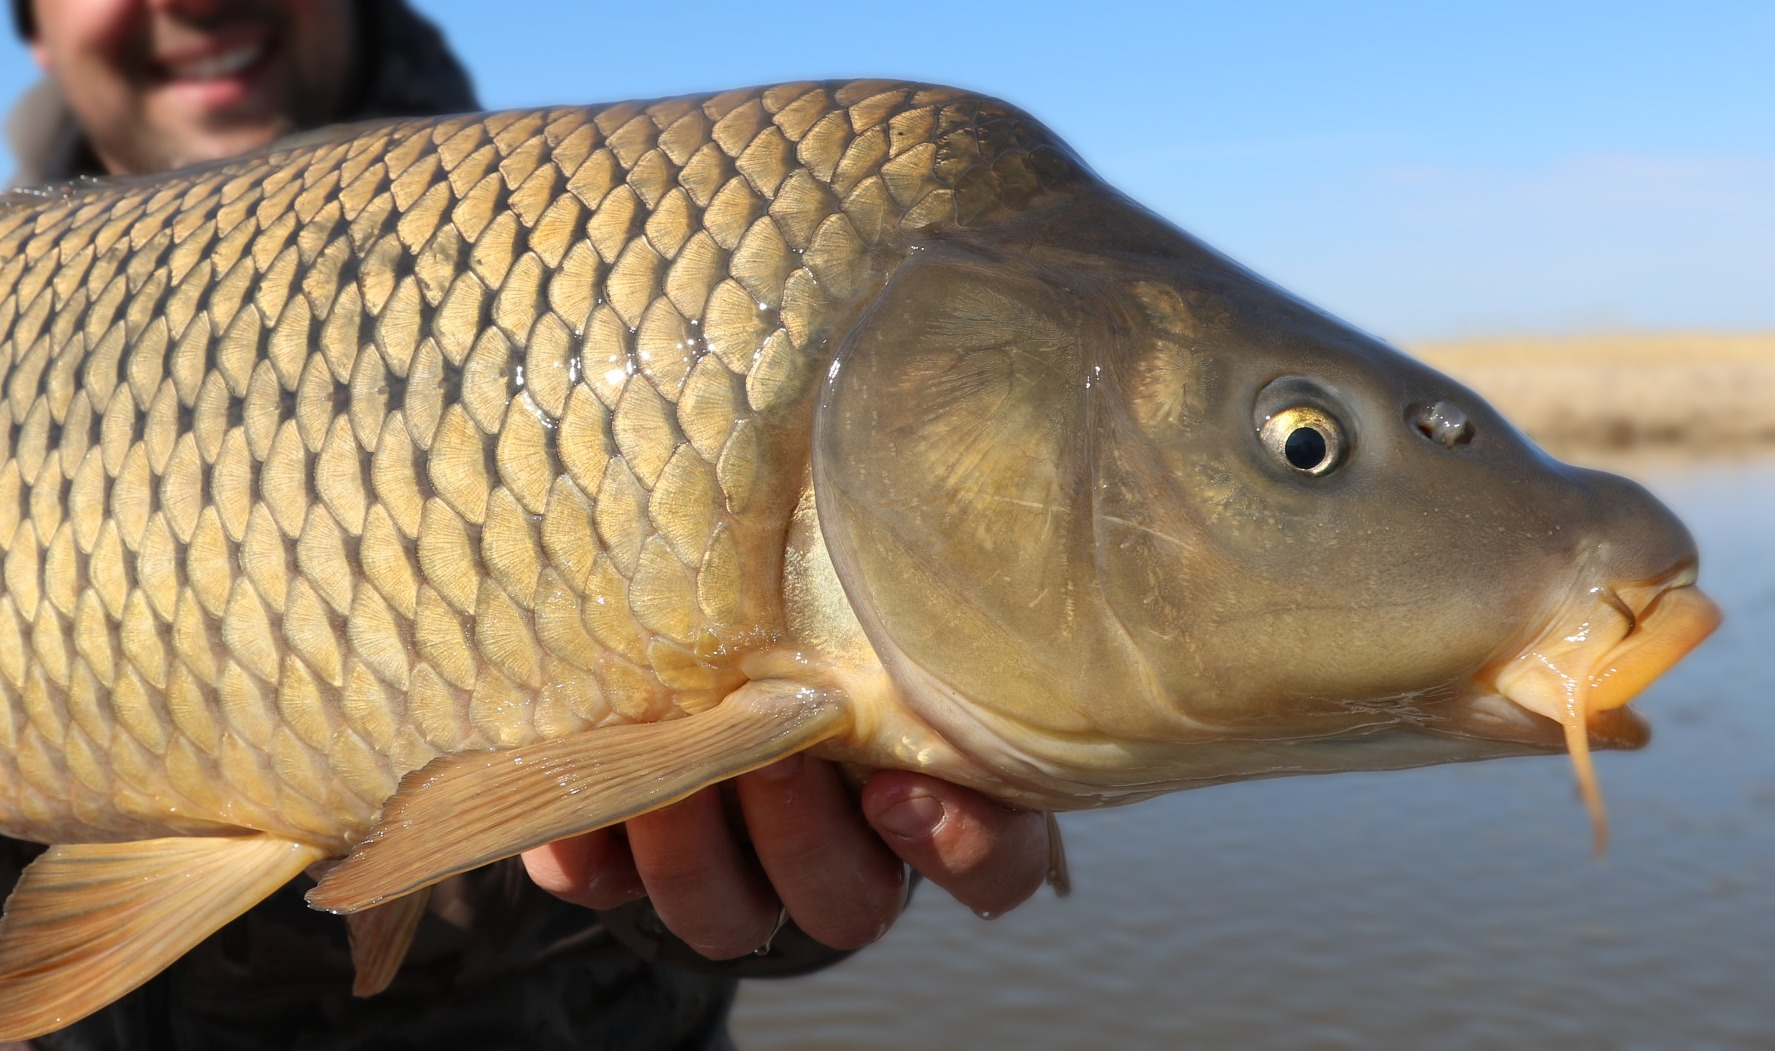 Common Carp - 12 Months of Master Angler photo contest